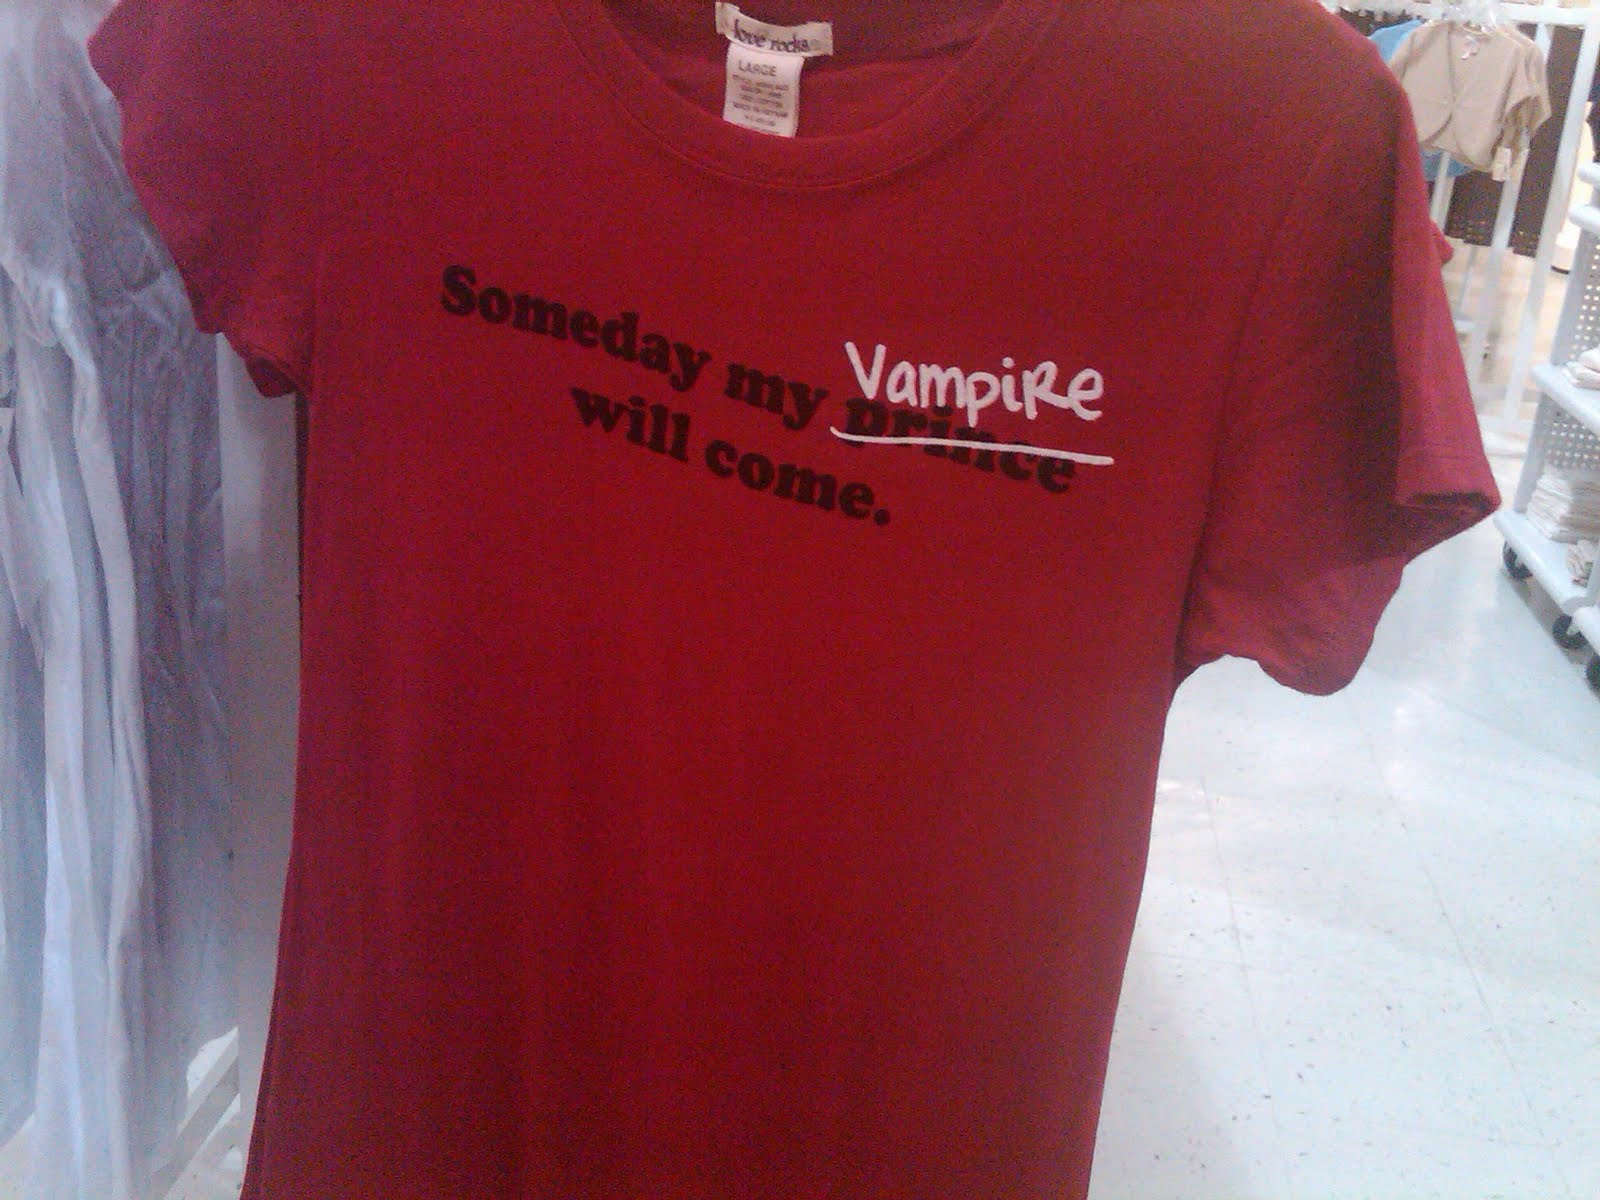 621c099df I spent the afternoon today shopping with my mom. One section of Beall's  has the most ridiculous shirts ever. All about vampires and werewolf, ...